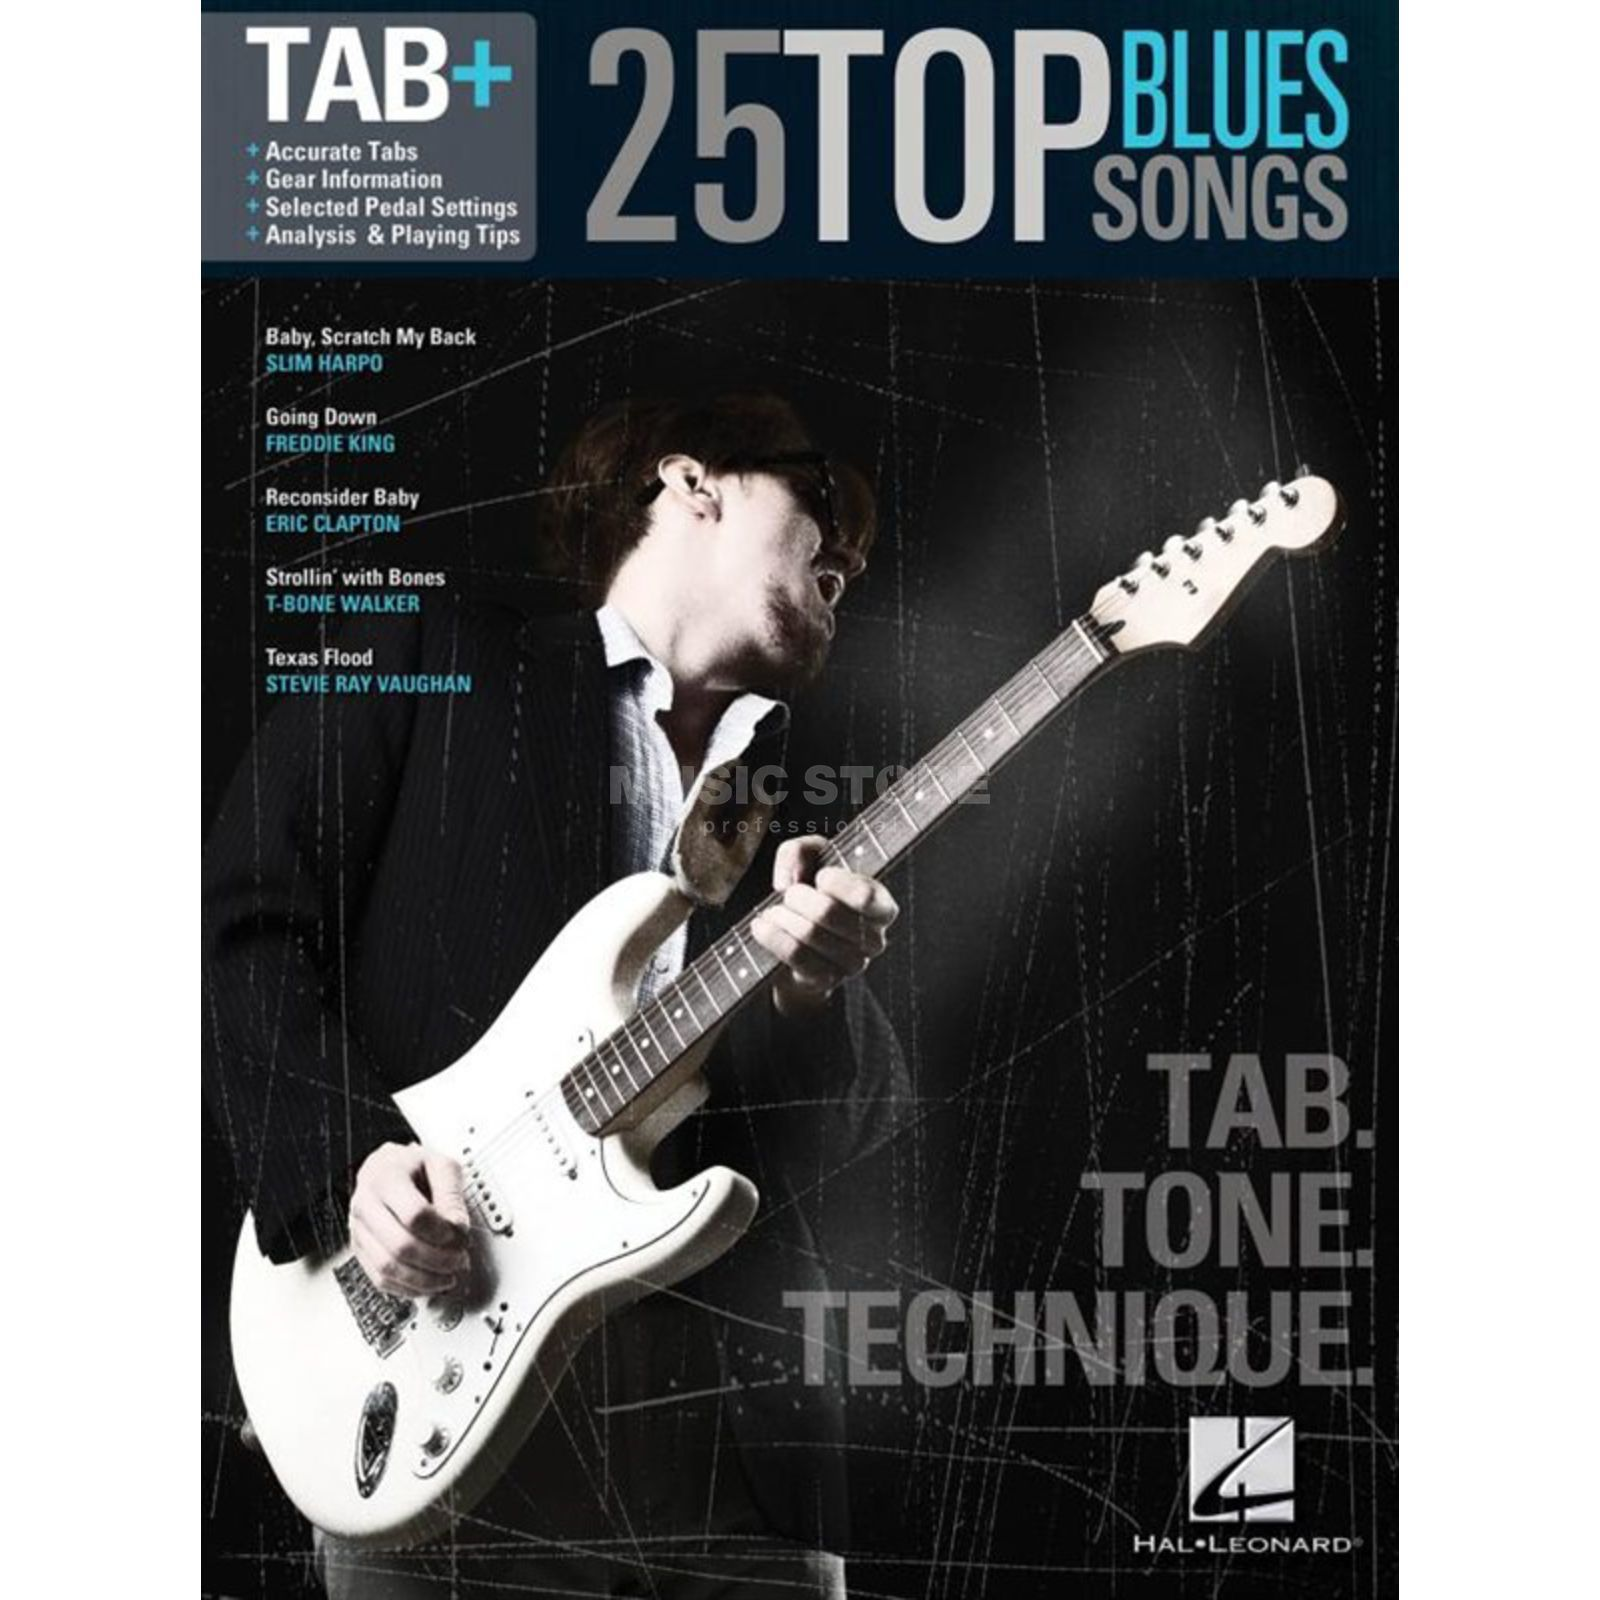 Hal Leonard Tab+: 25 Top Blues Songs – Tab. Tone. Technique. Produktbild